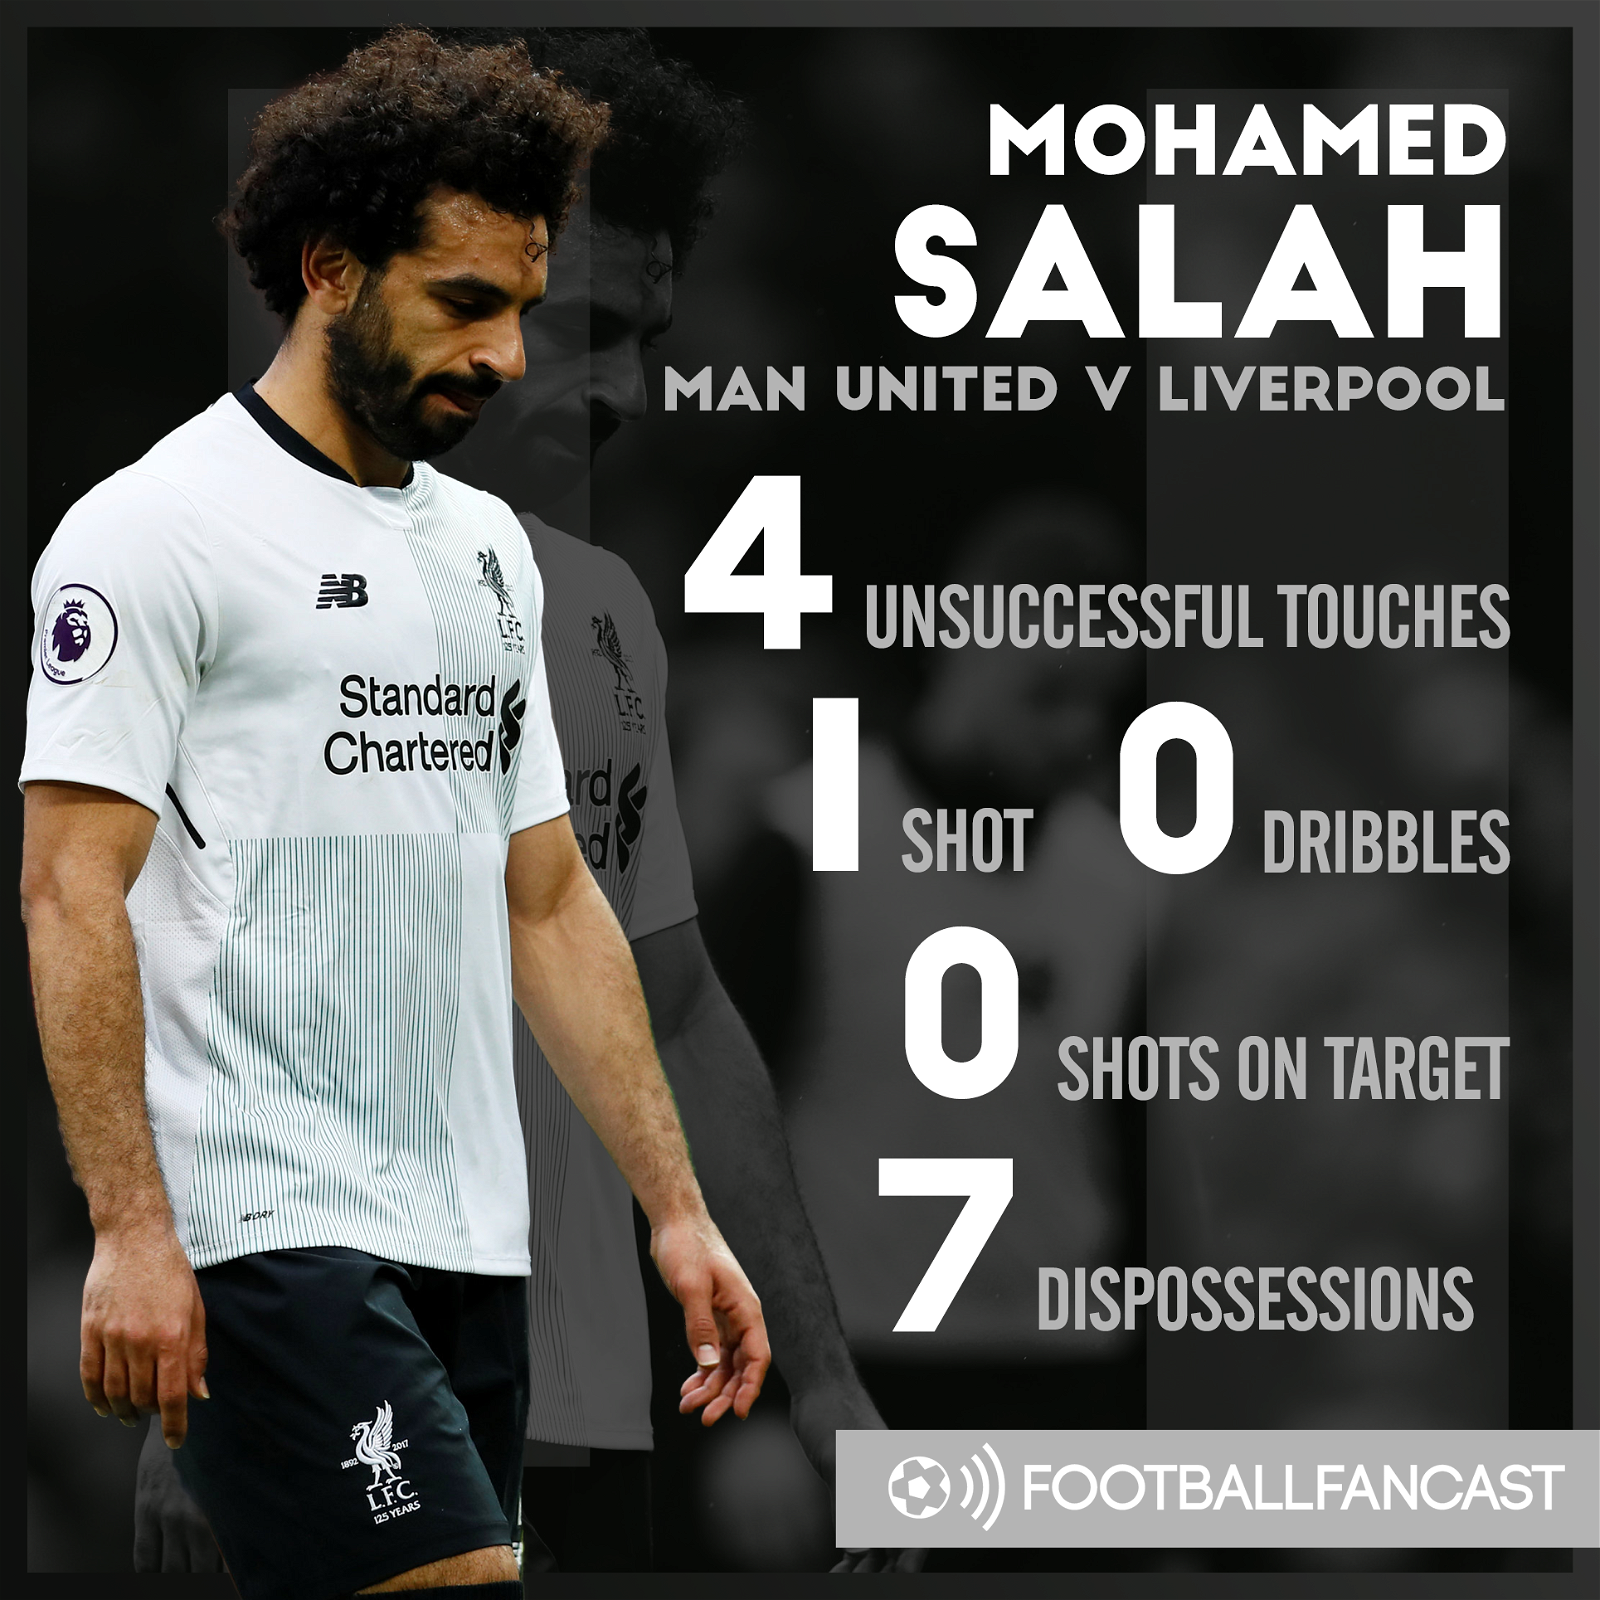 Mohamed Salah's stats from a 2-1 defeat to Manchester United